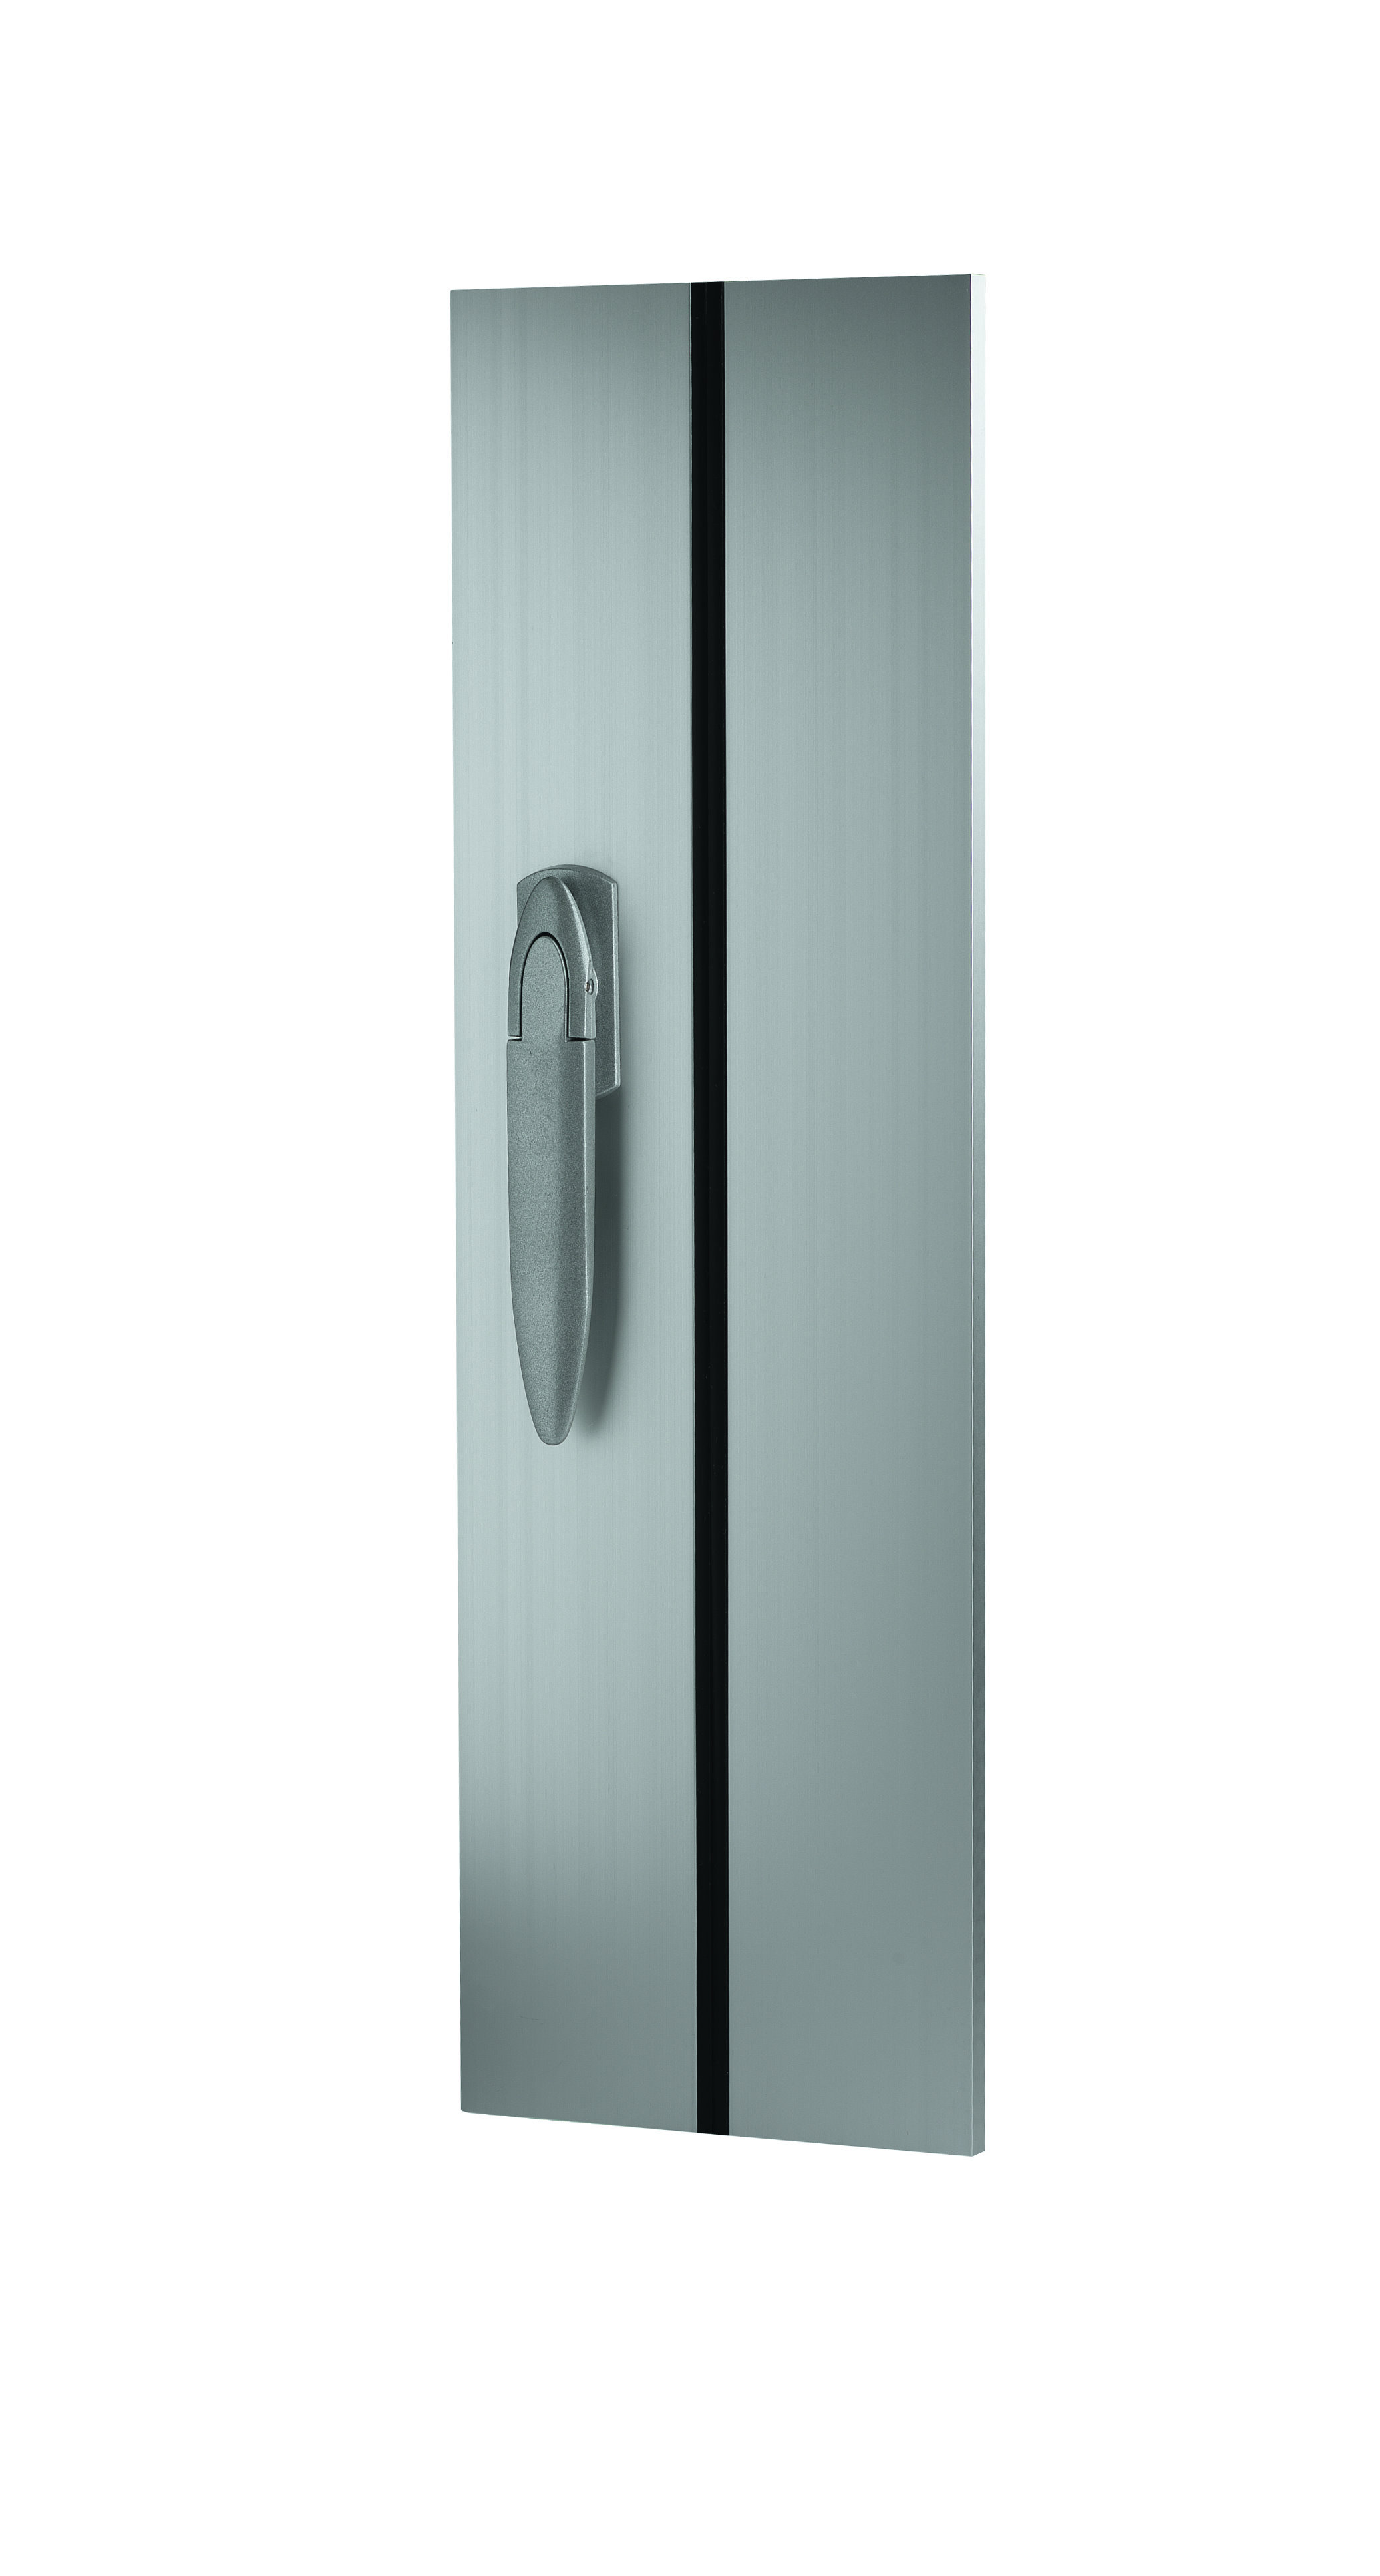 Bifold door handle a